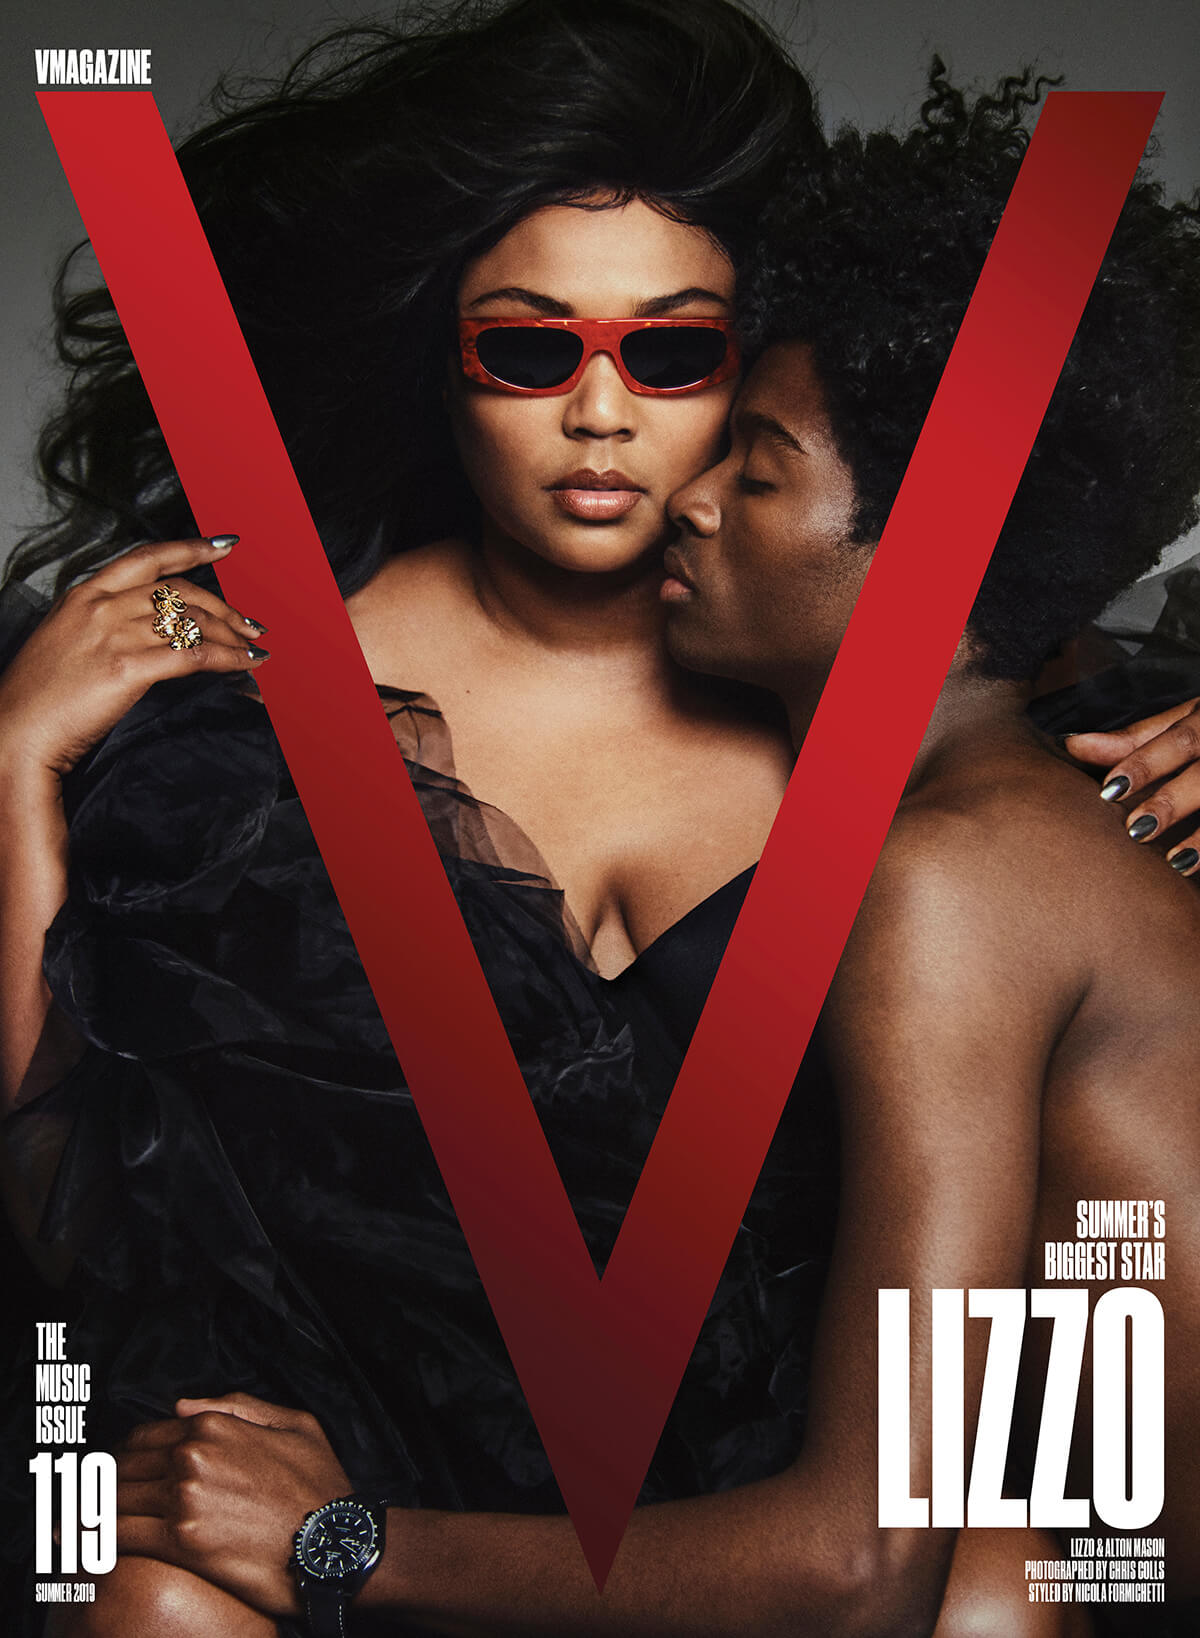 Lizzo Cover for V Magazine Issue 119: The Music Issue (Summer 2019)